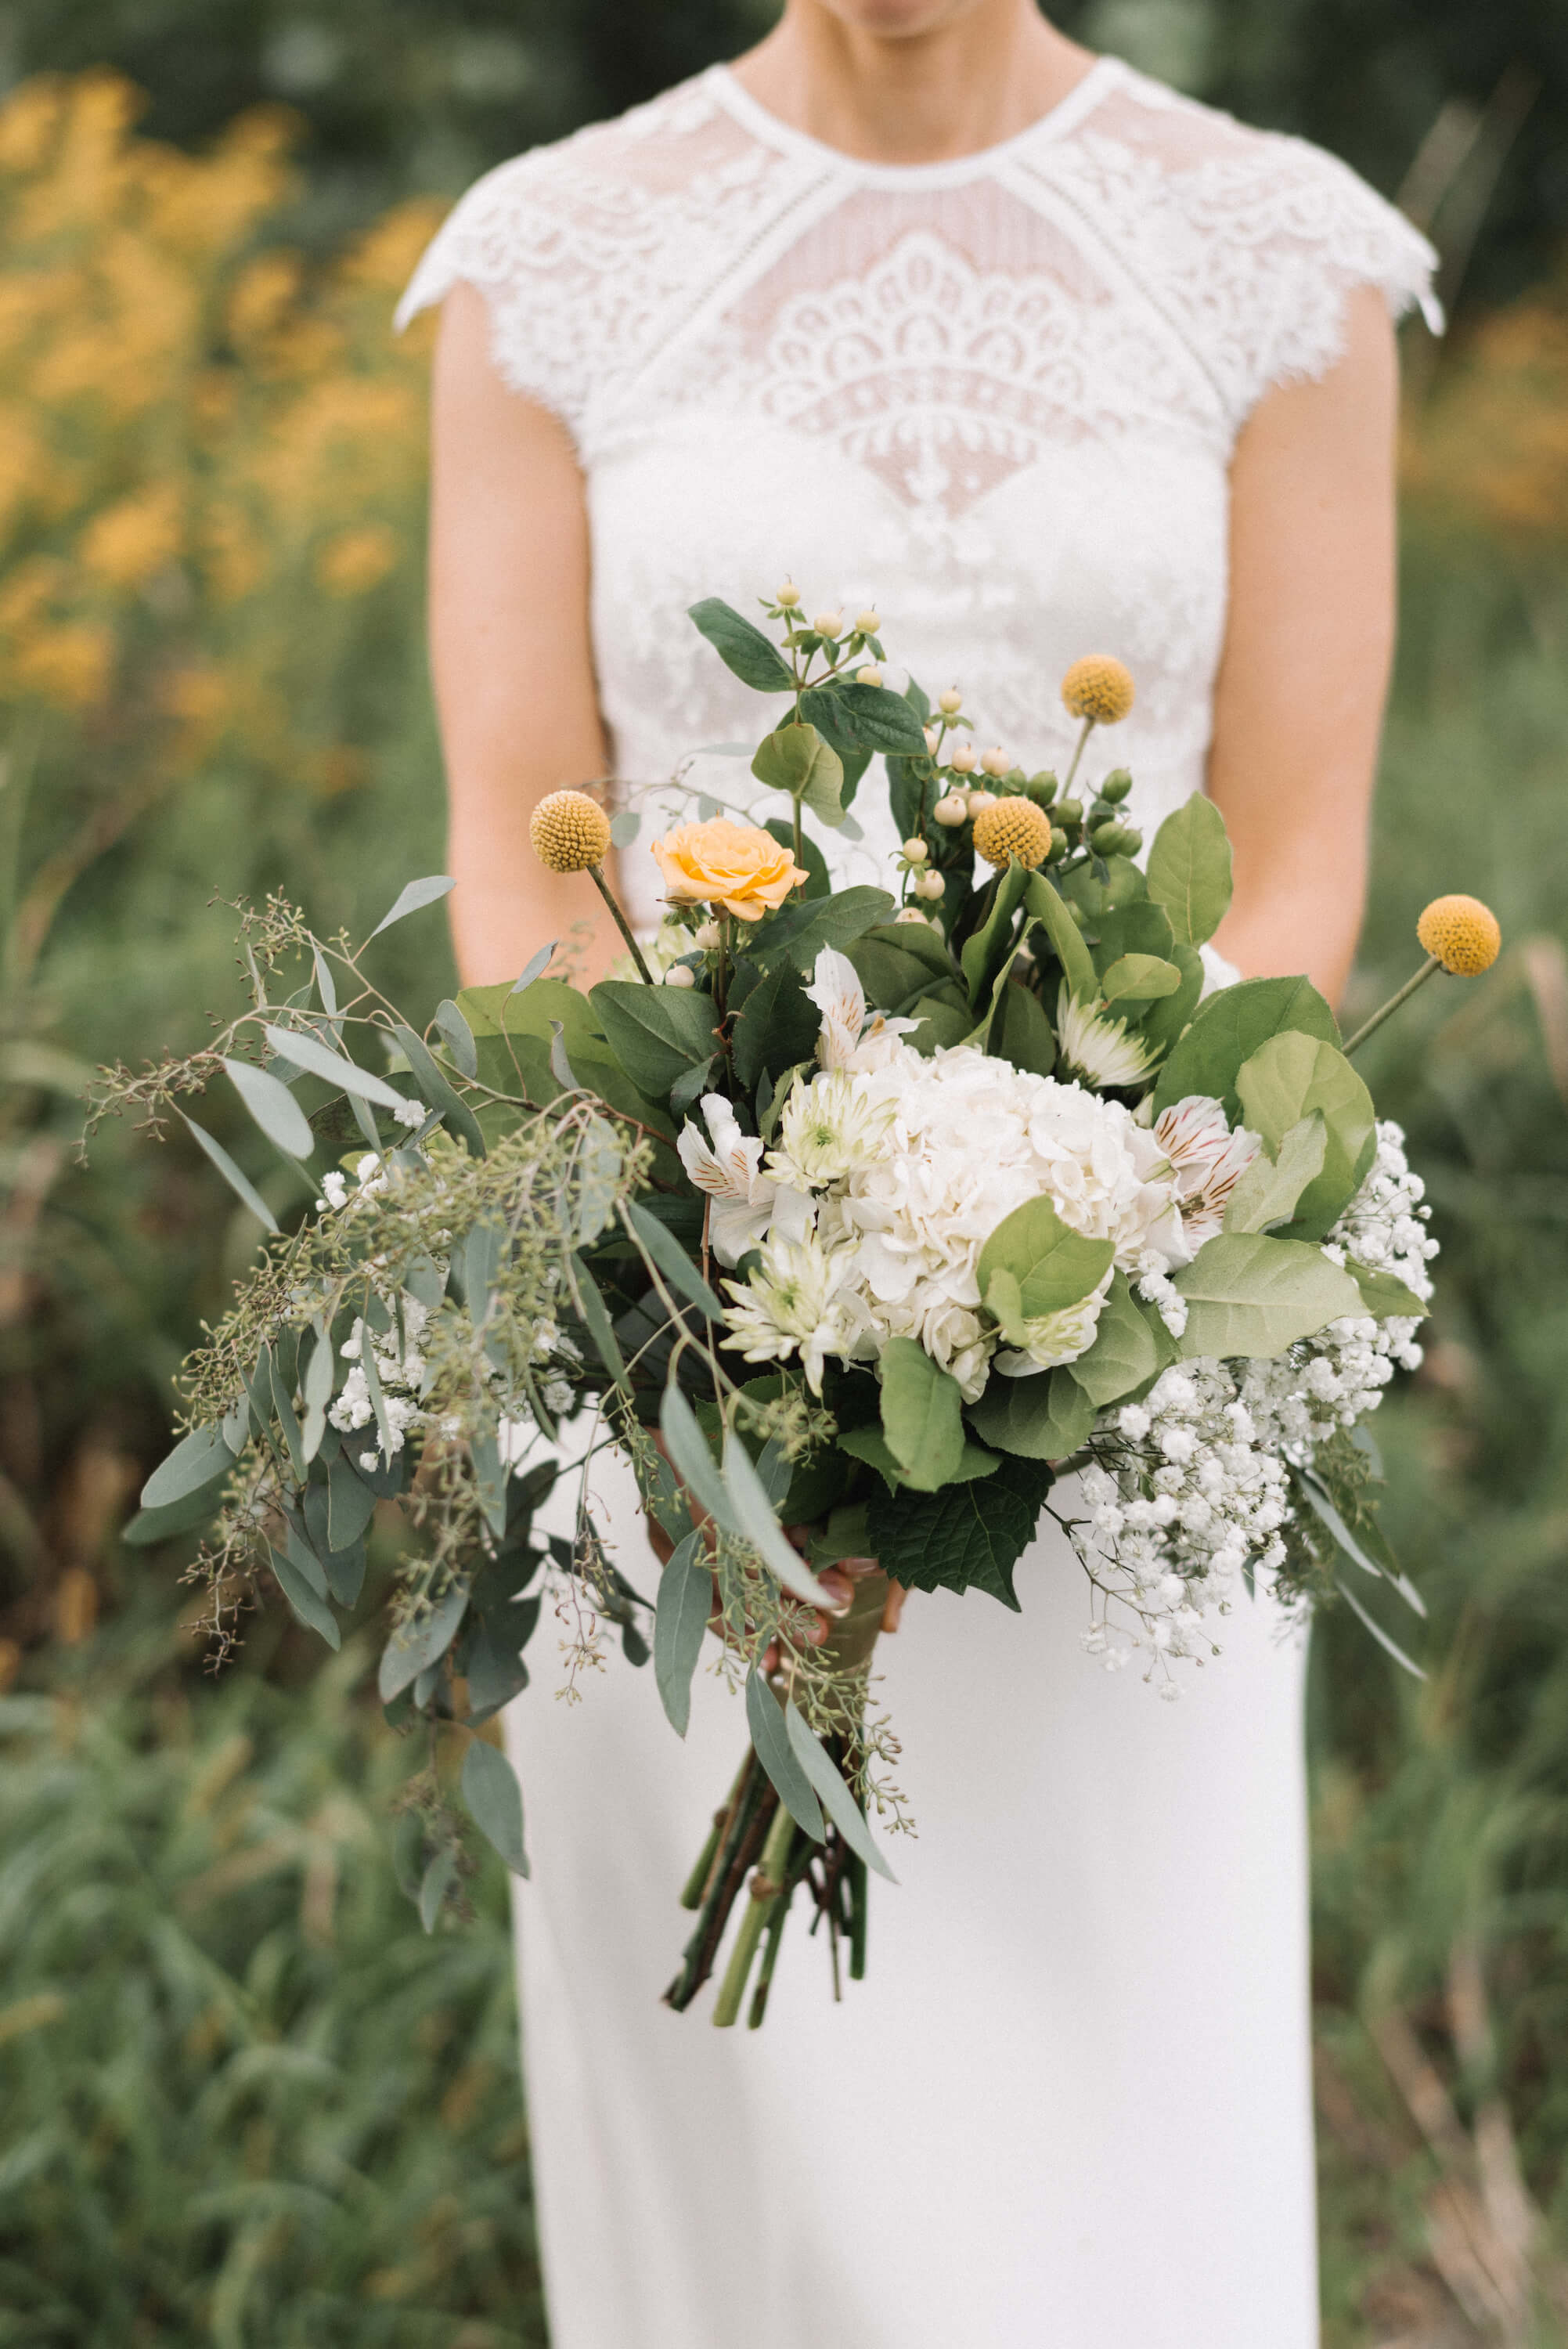 bridal bouquet with billy balls | Jonny and Liz Minnesota Wedding Photographers | Sixpence day of coordinating at Gale Woods farm venue near the lake.JPG